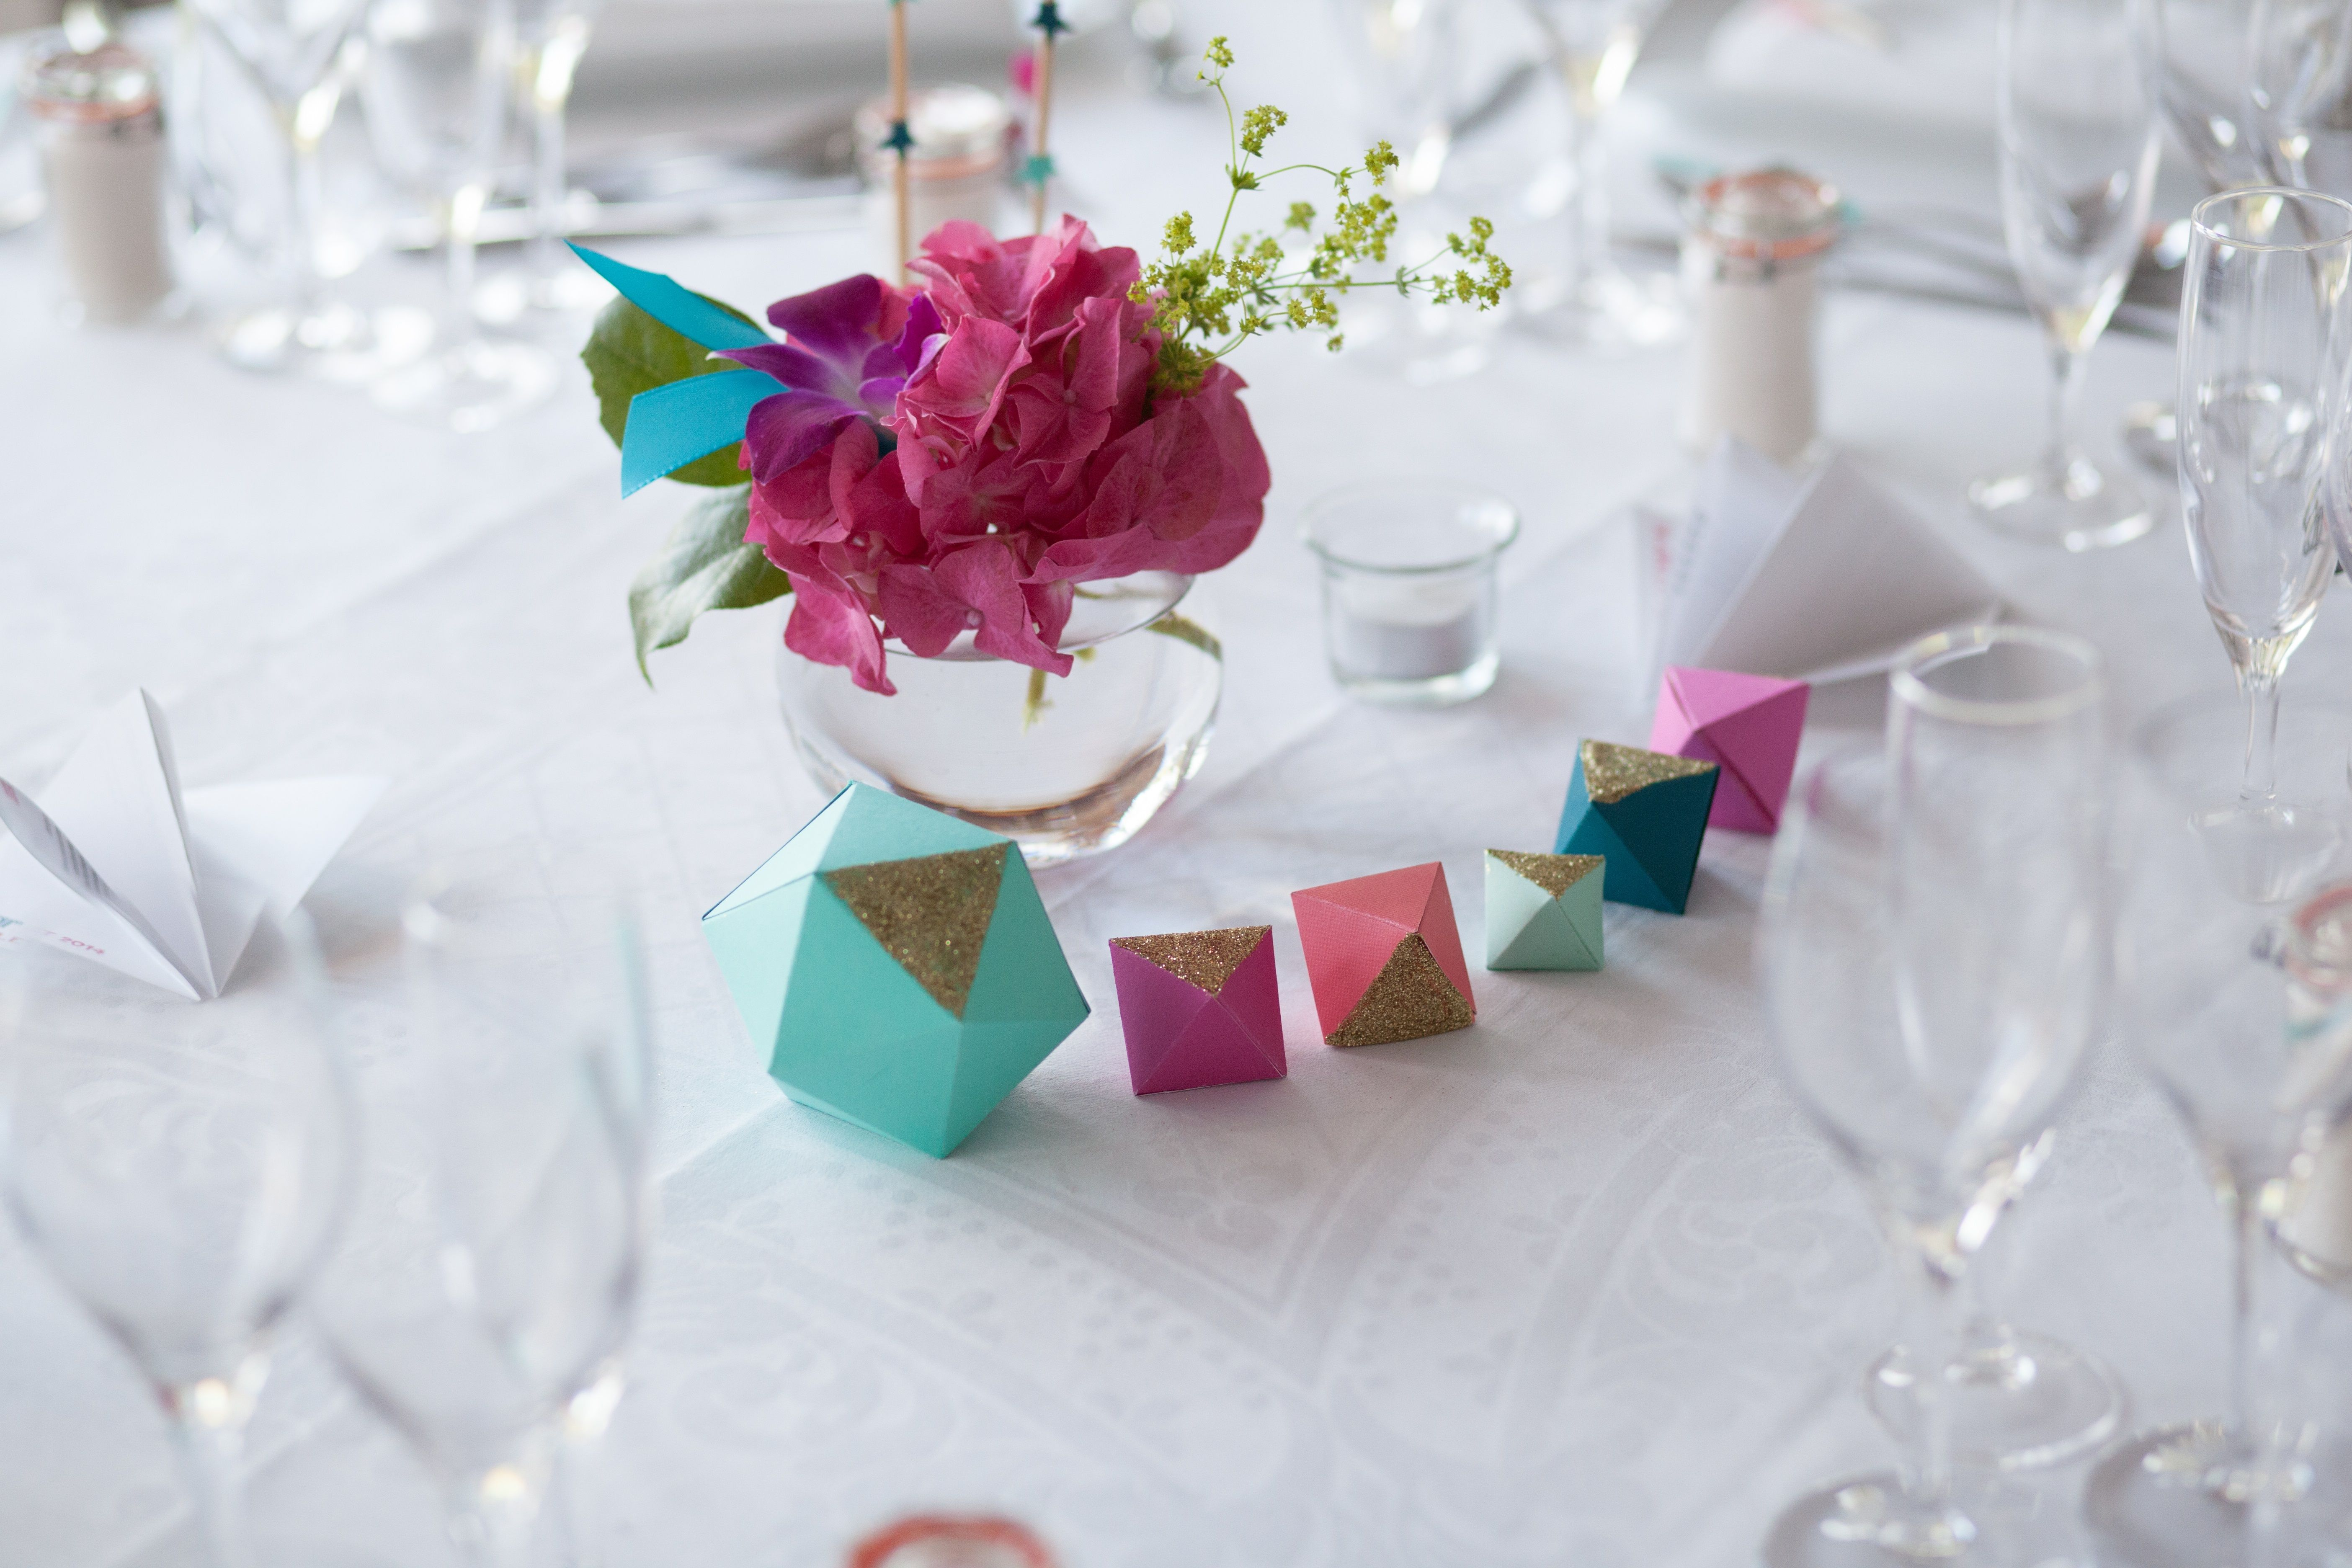 Mariage Origami - Made by Dellan | Table decorations | Pinterest ...